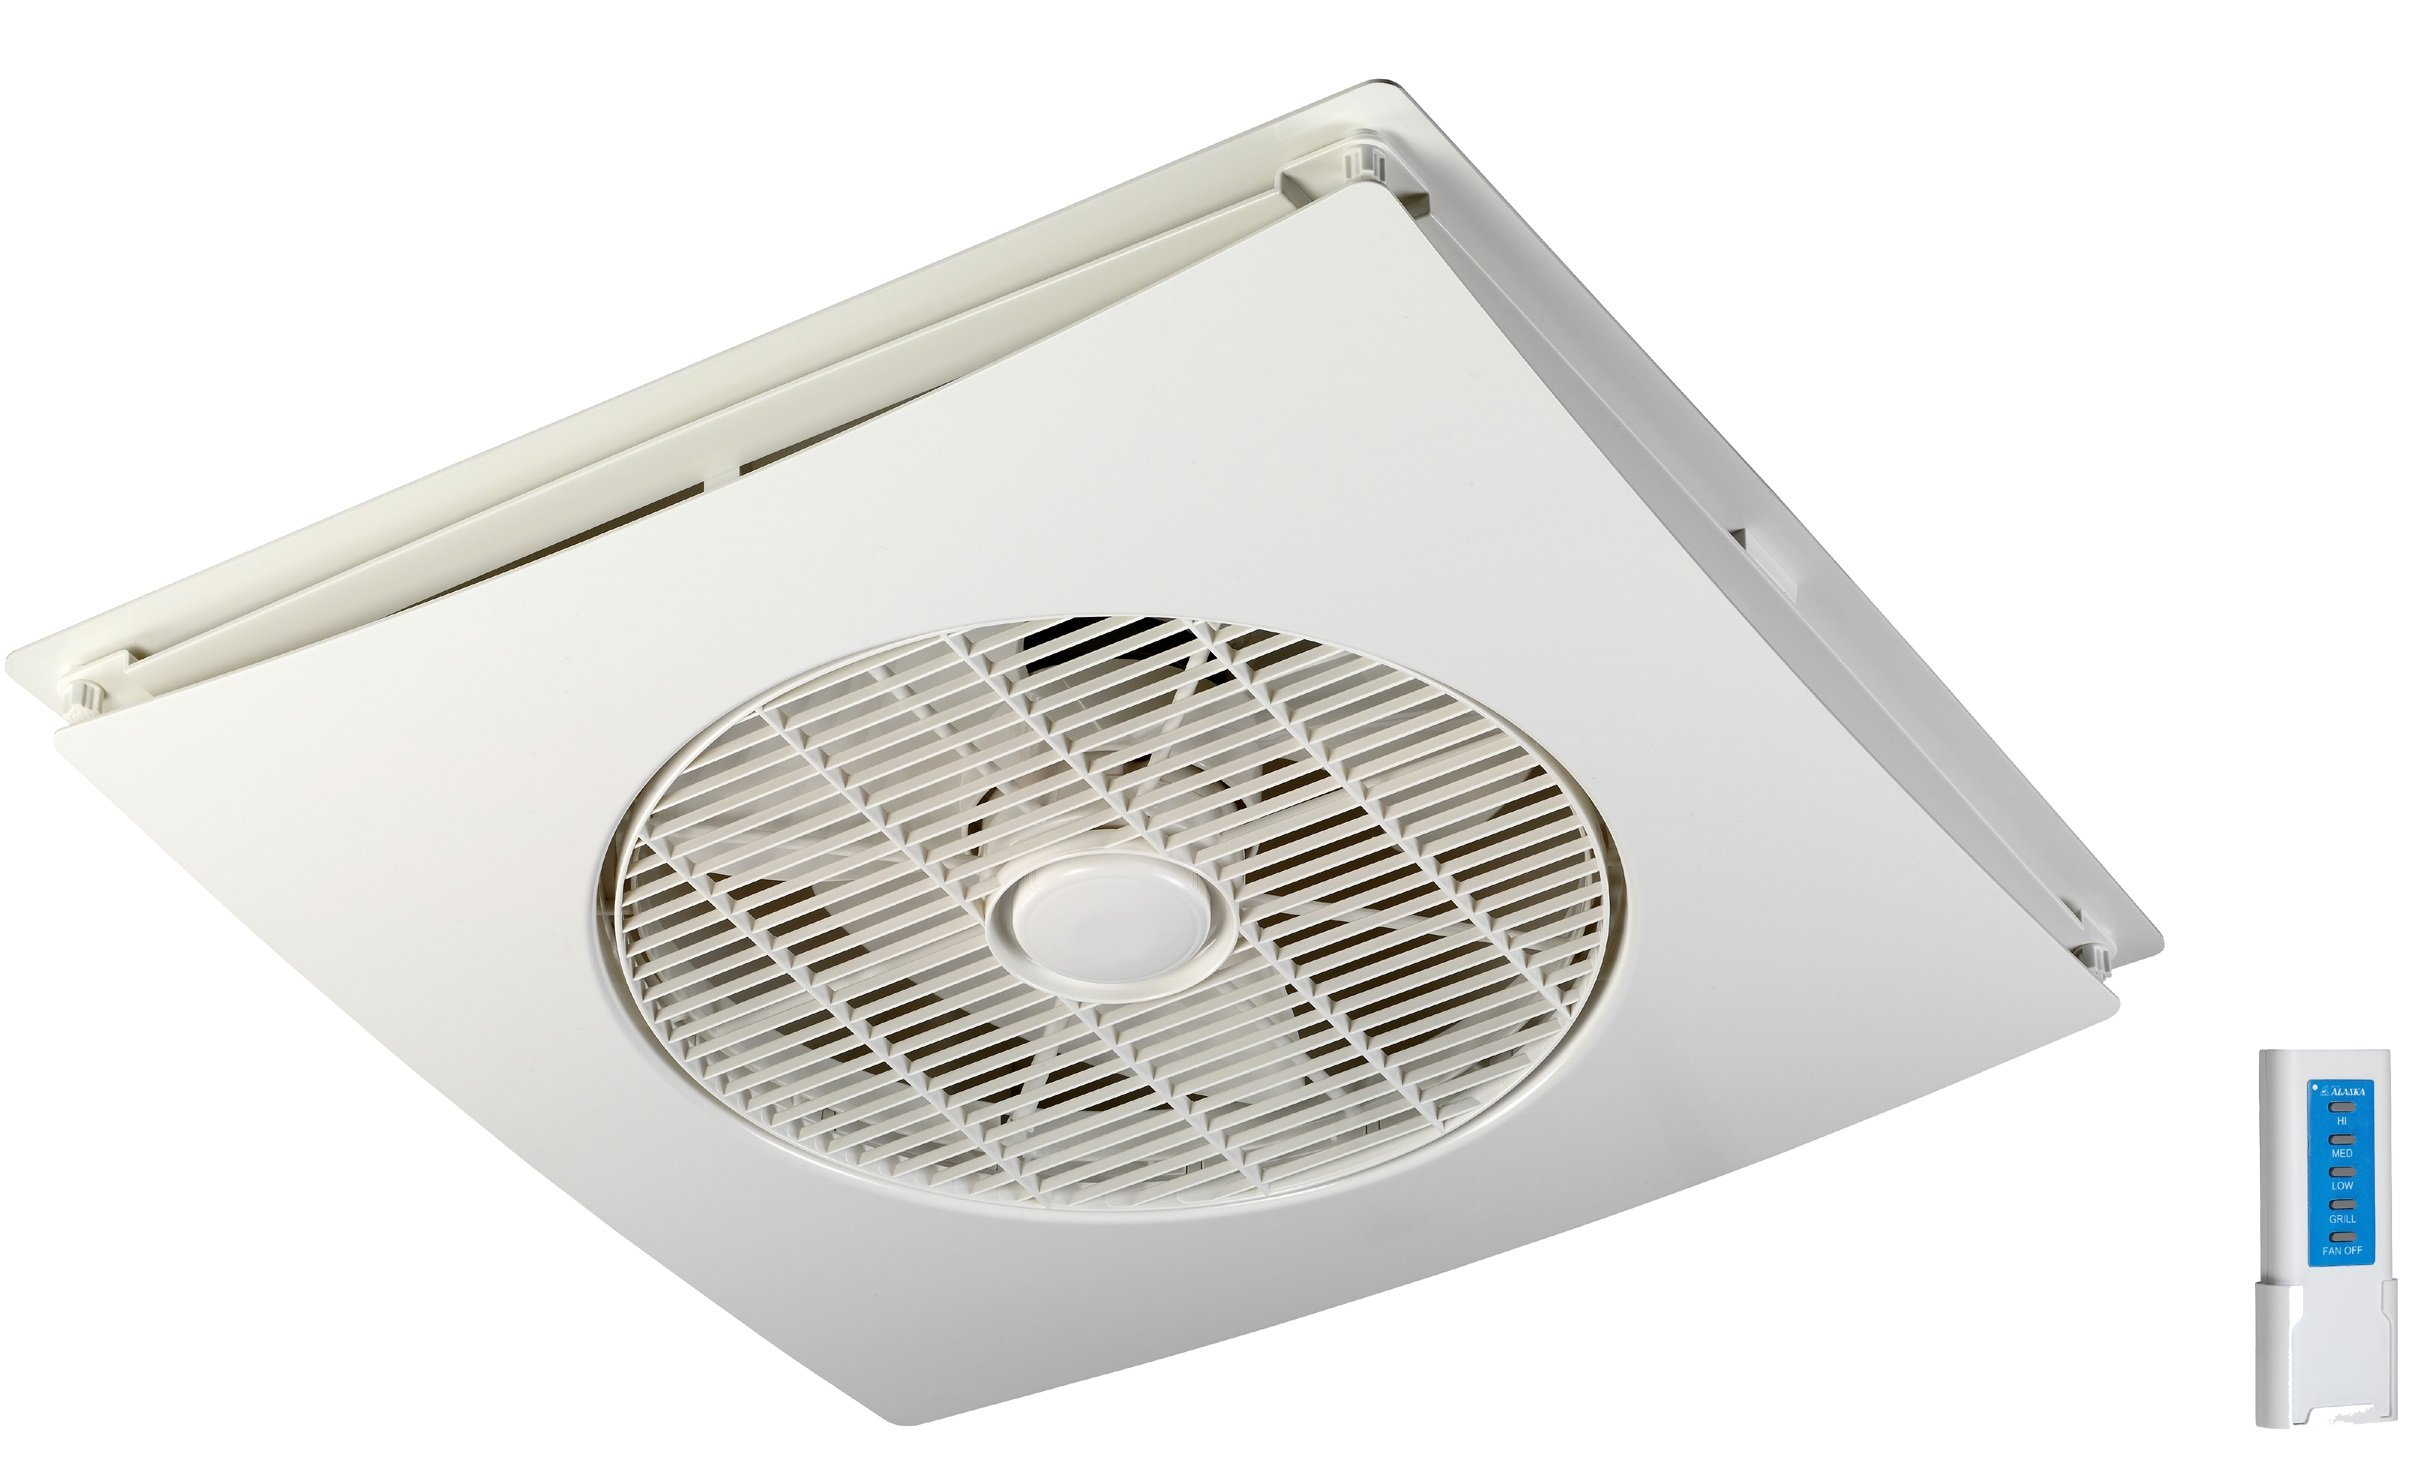 Model: SA-398 - Drop Ceiling Tile Fan With Remote Control